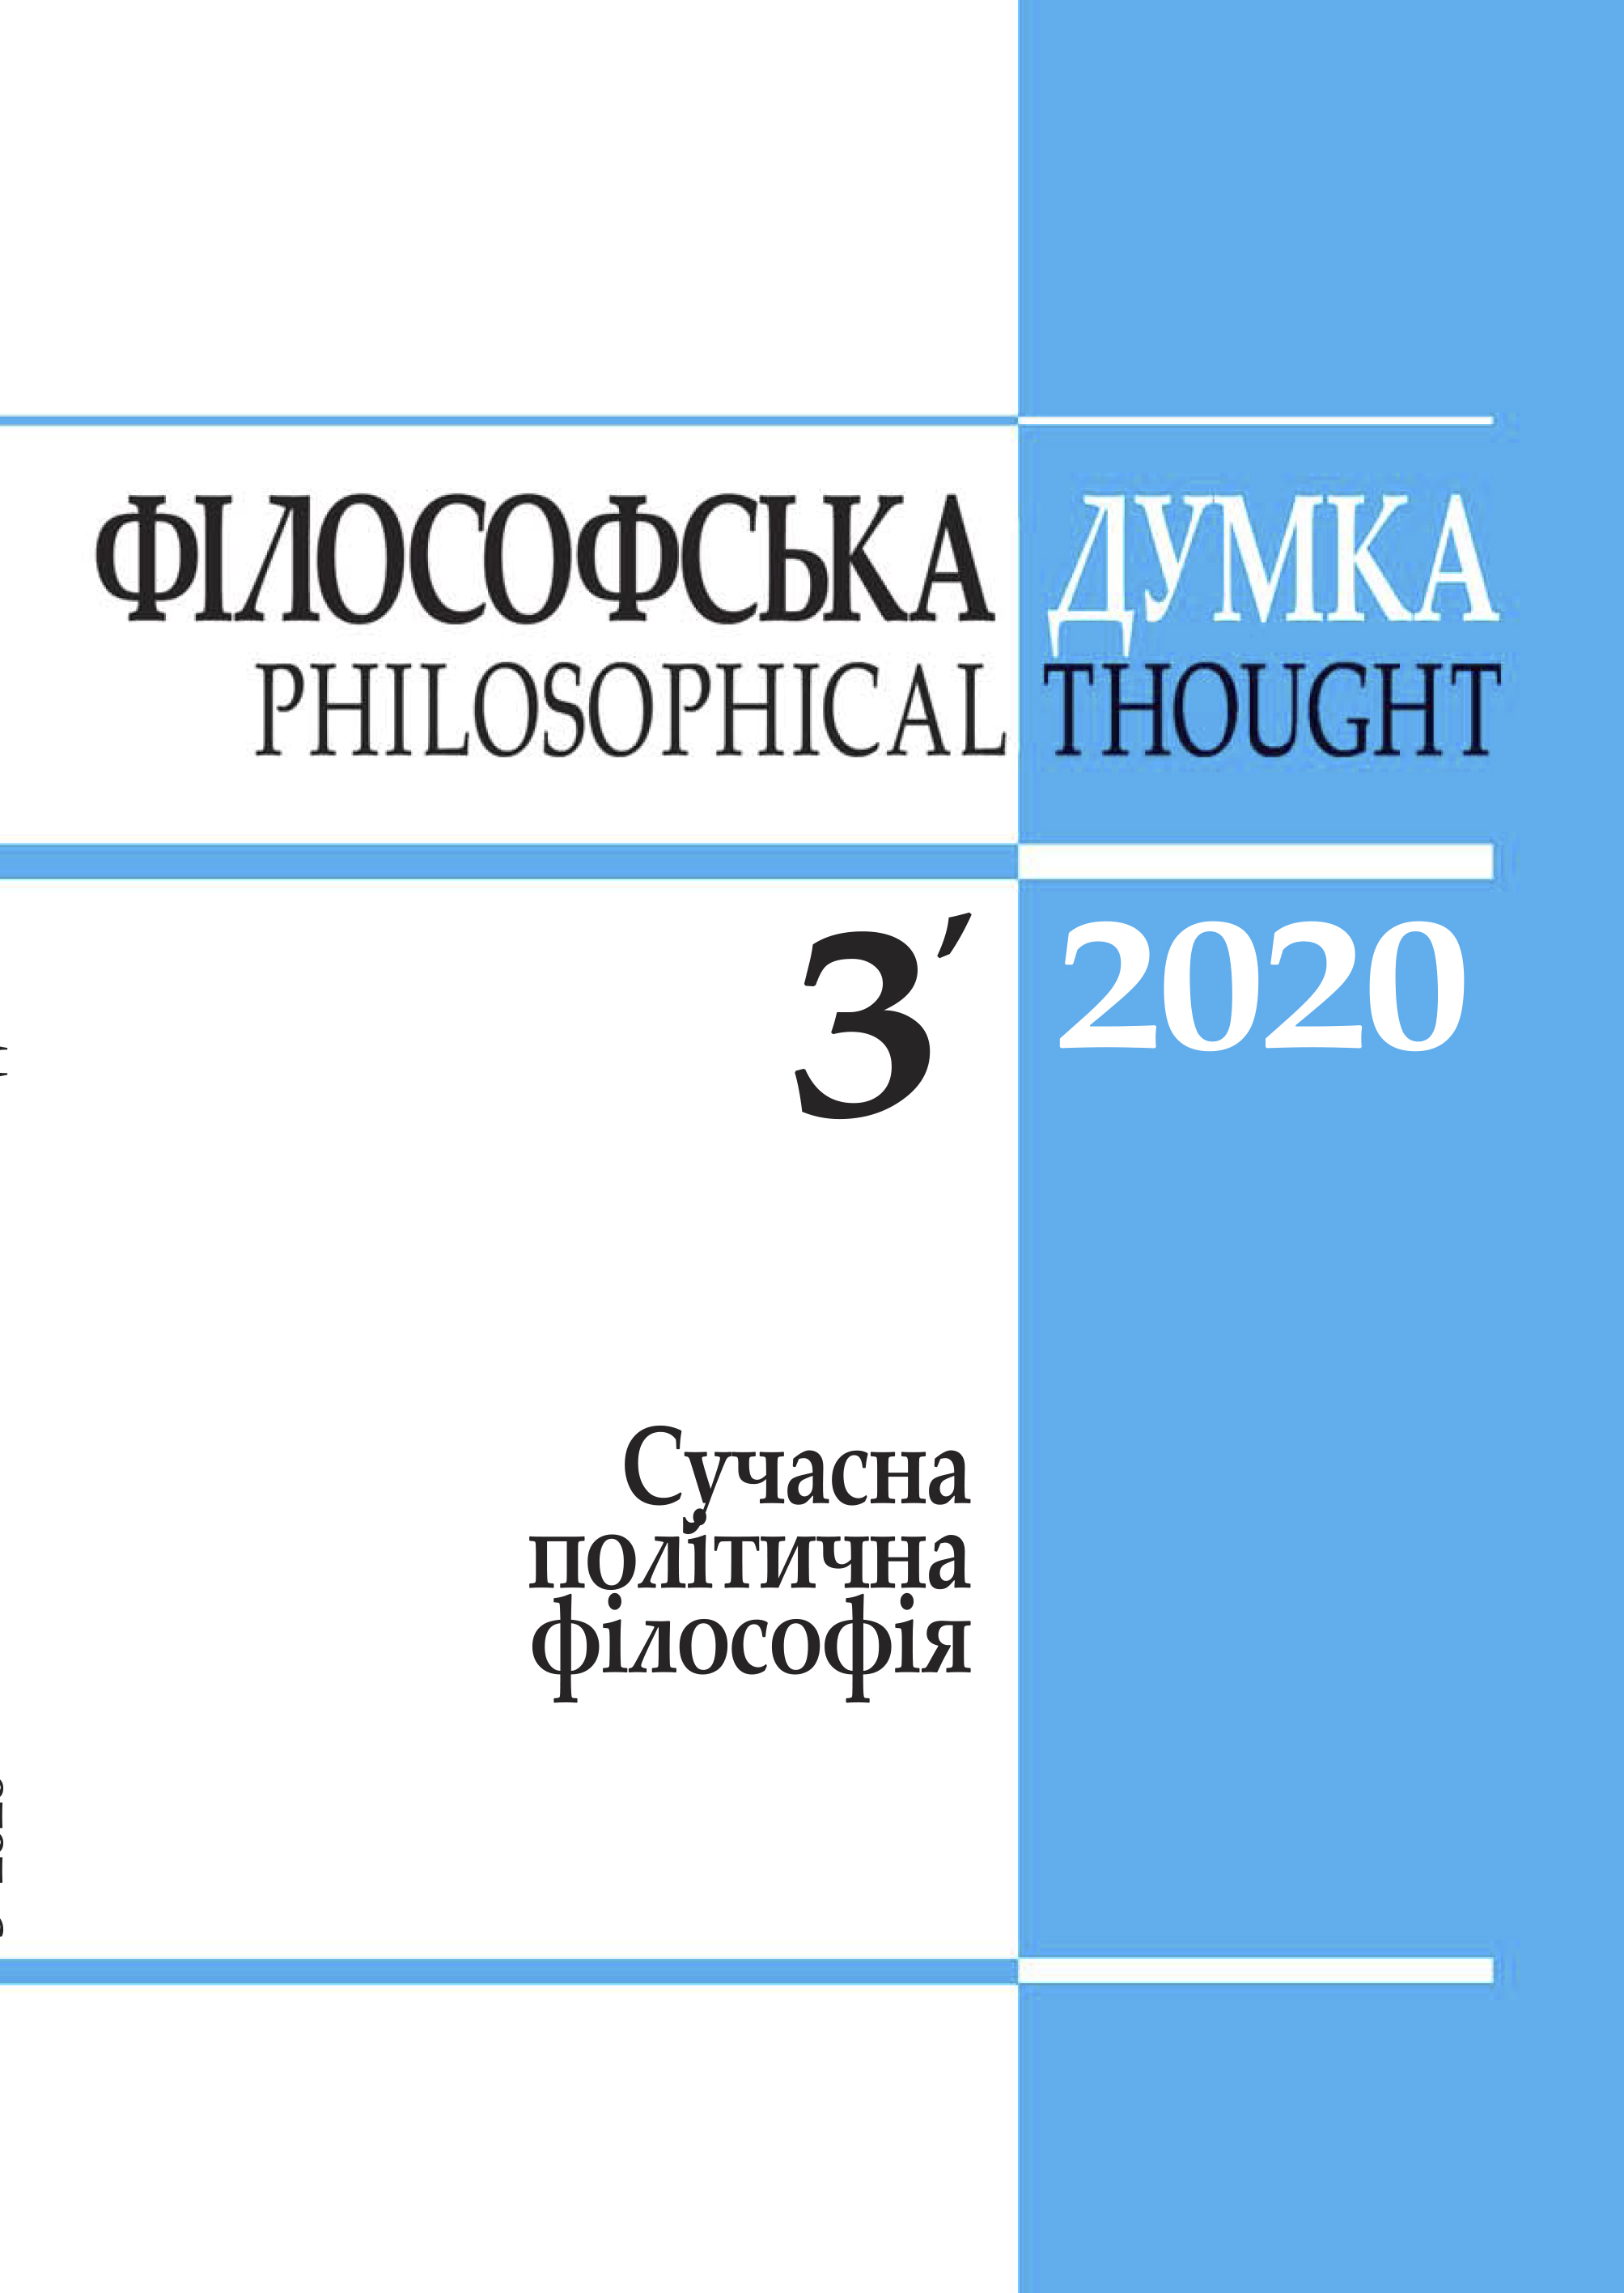 View No. 3 (2020): Philosophical thought